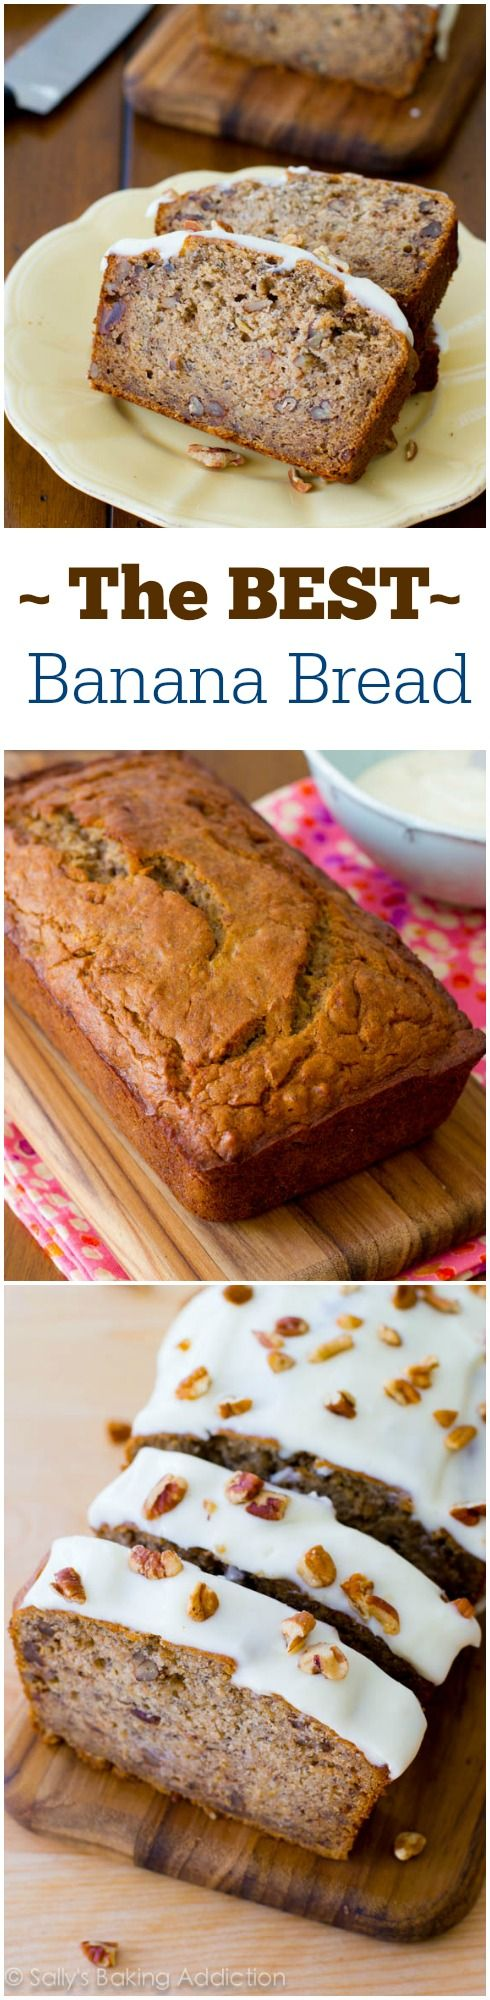 My absolute favorite banana bread recipe - top it with some sweet cream cheese frosting. The BEST bread you'll ever eat!